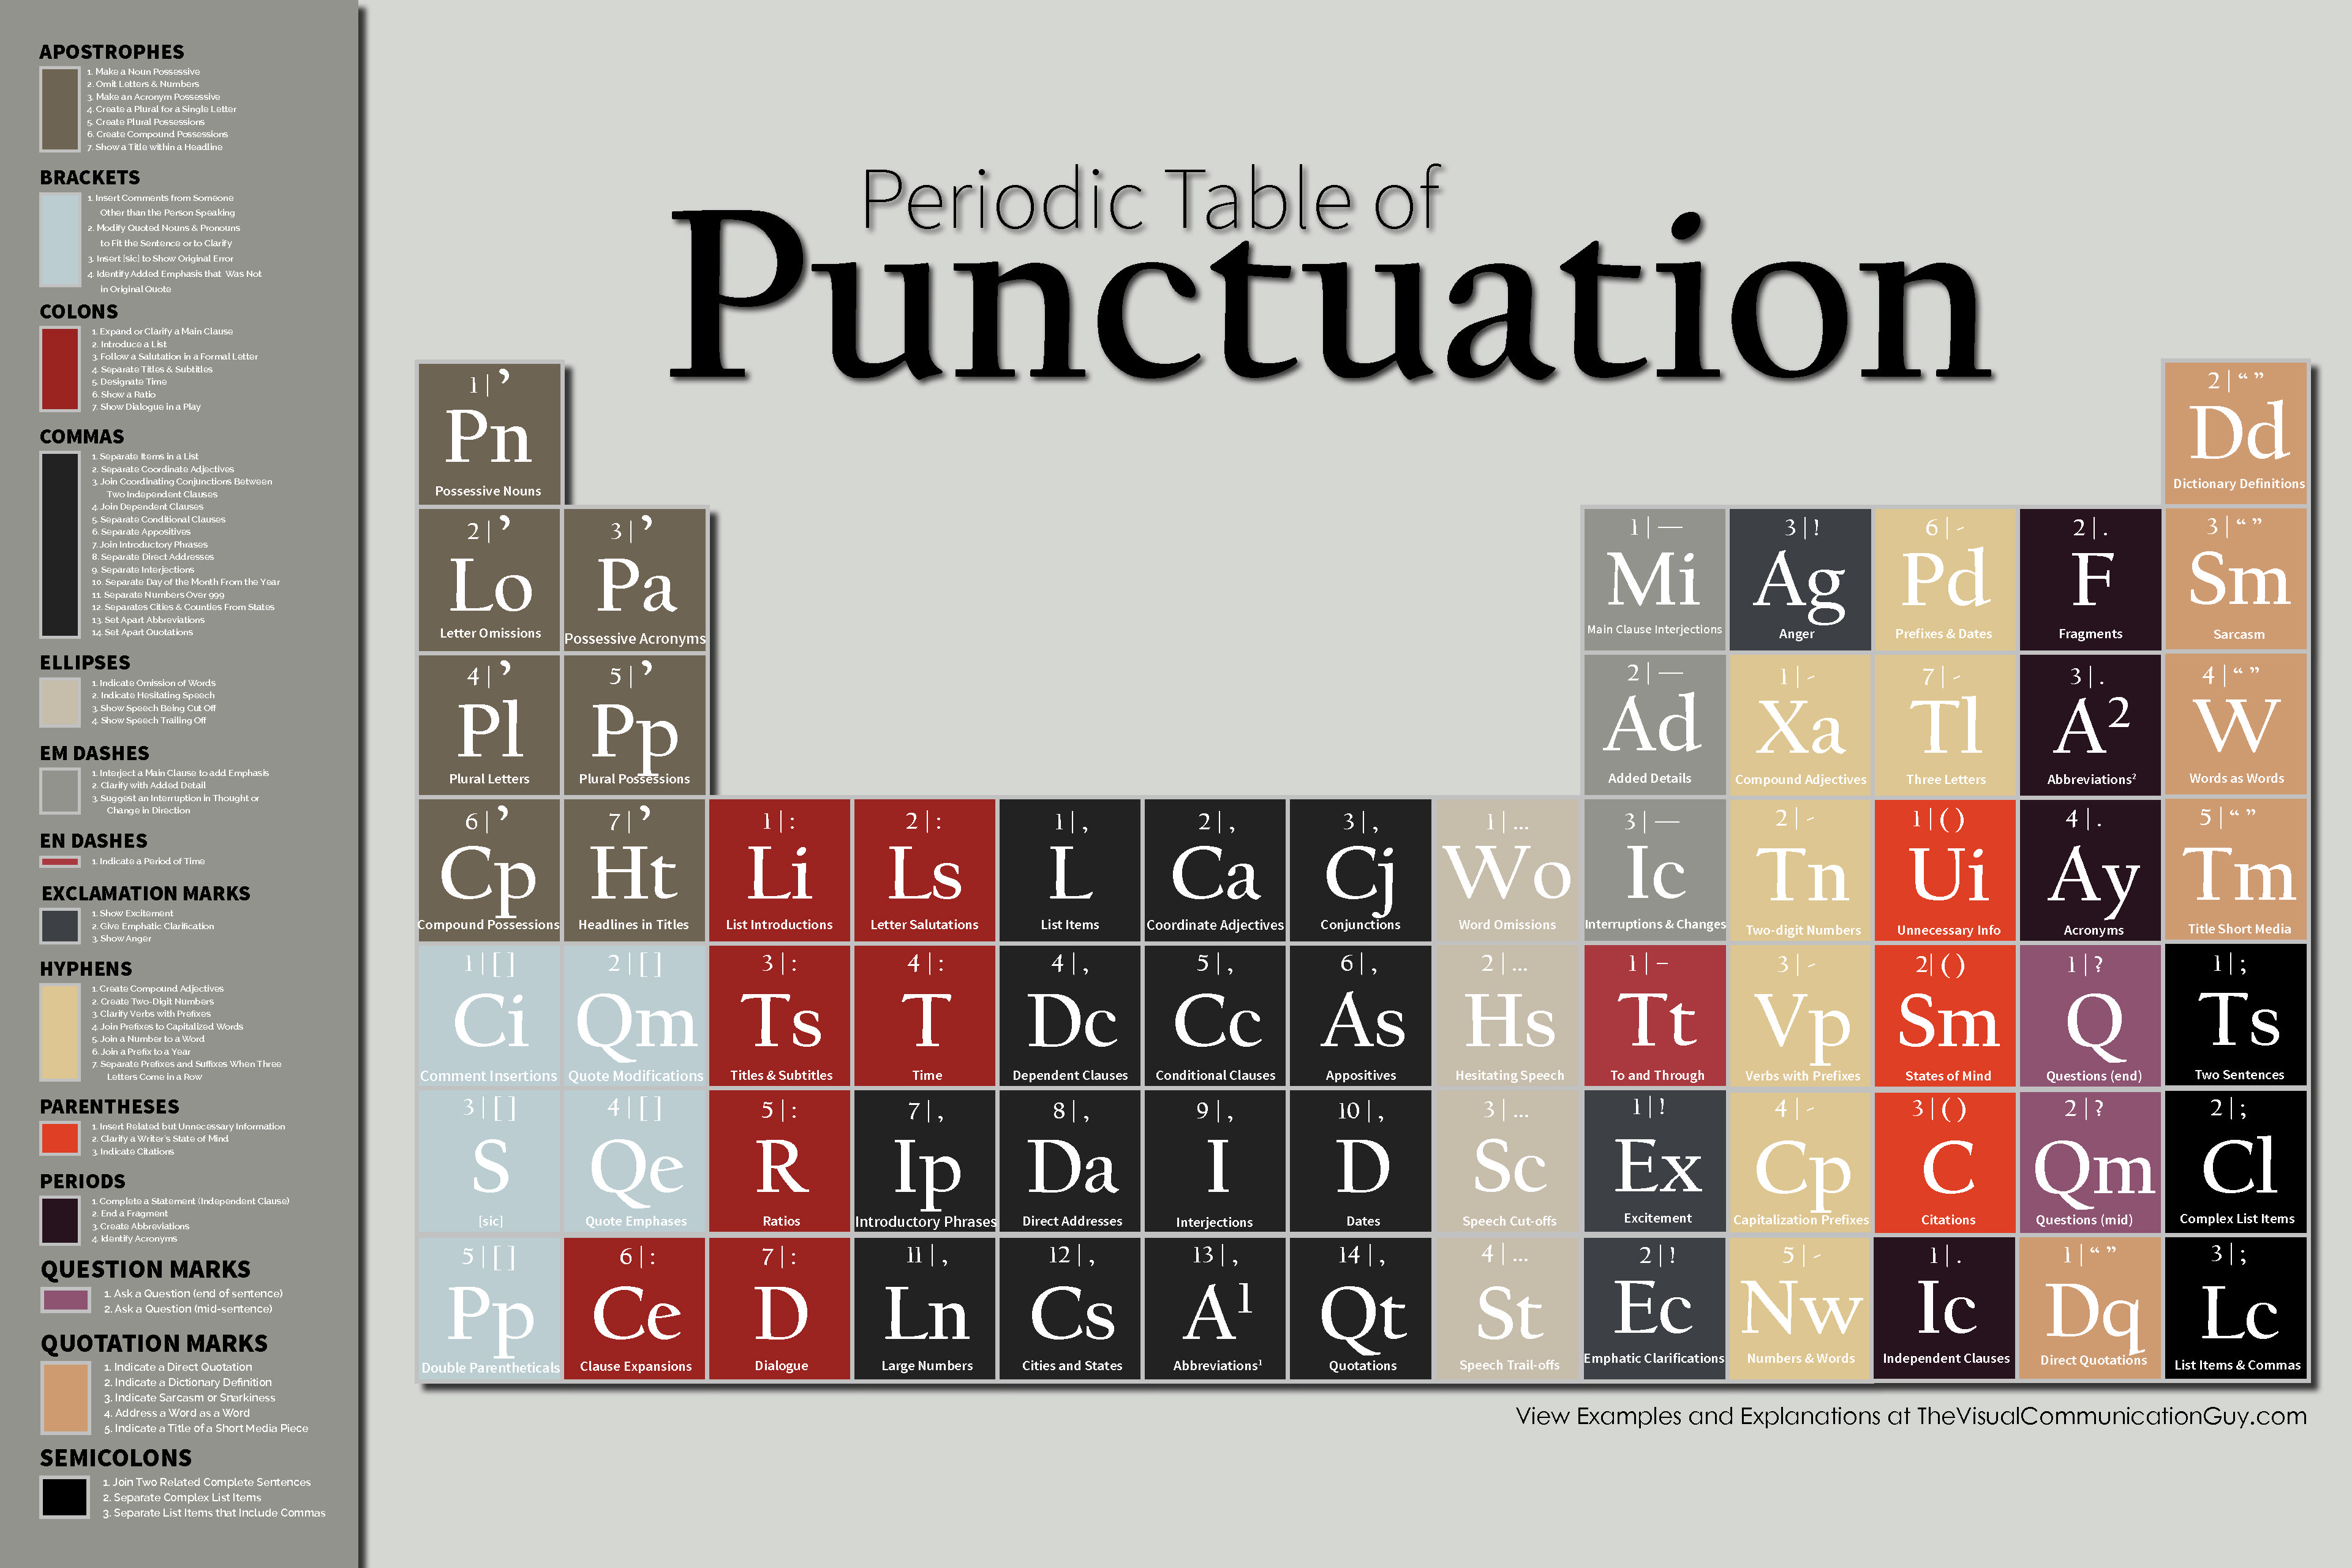 Periodic table of punctuation poster download the visual periodic table of punctuation poster download the visual communication guy designing writing and communication tips for the soul urtaz Gallery